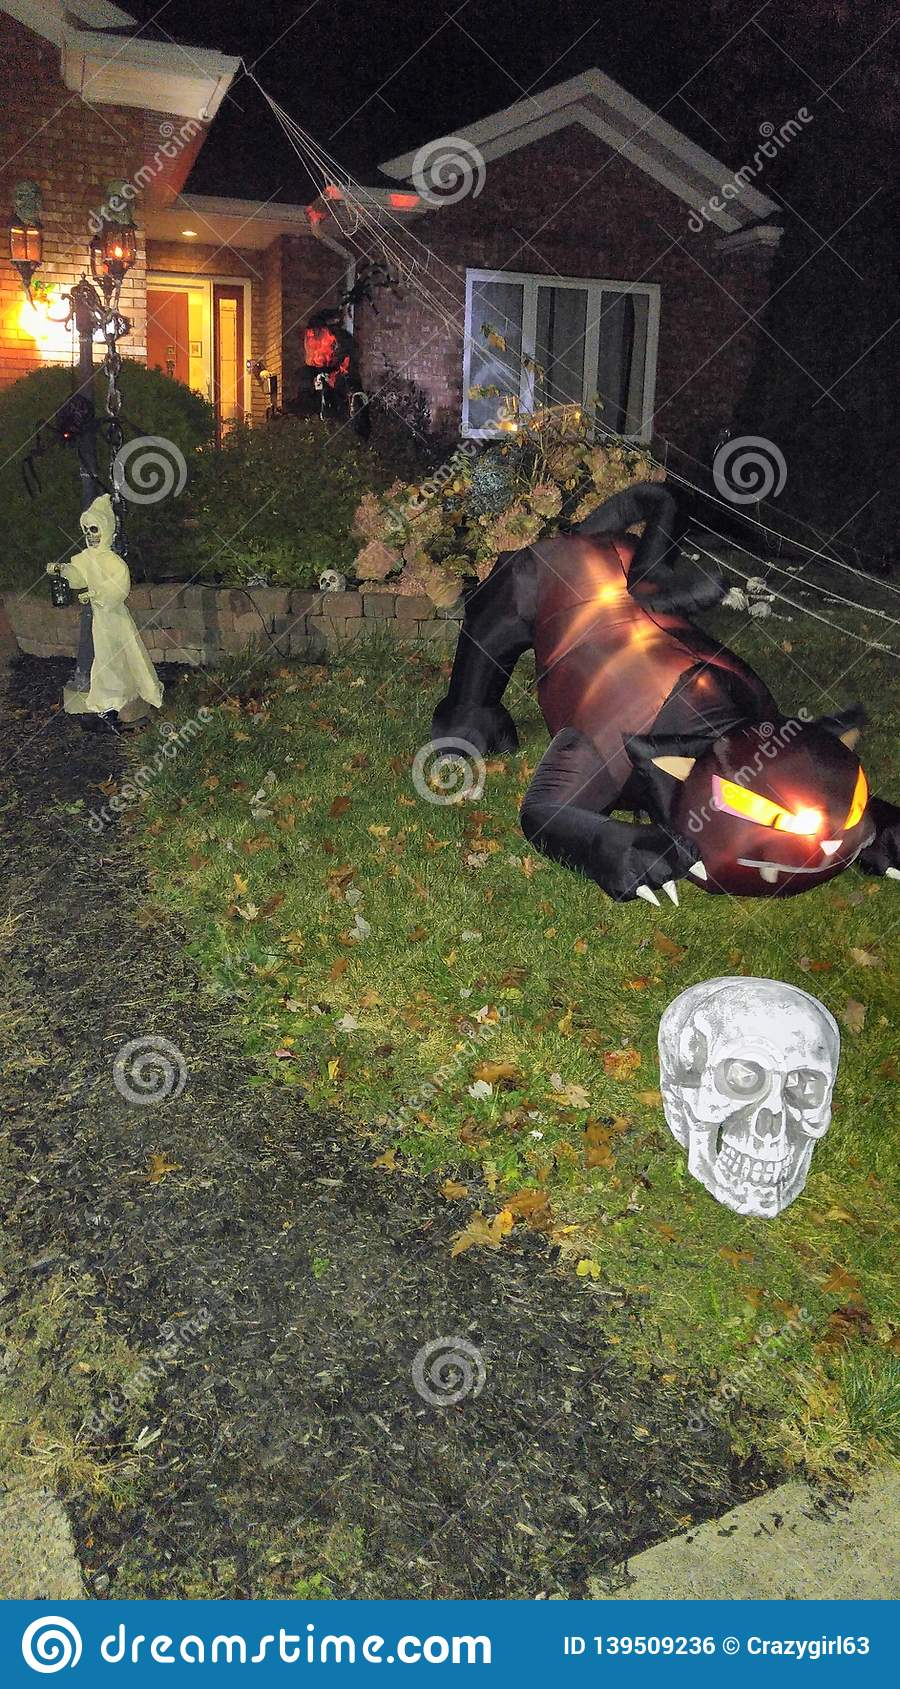 Spooky Halloween Decorations Stock Image of night